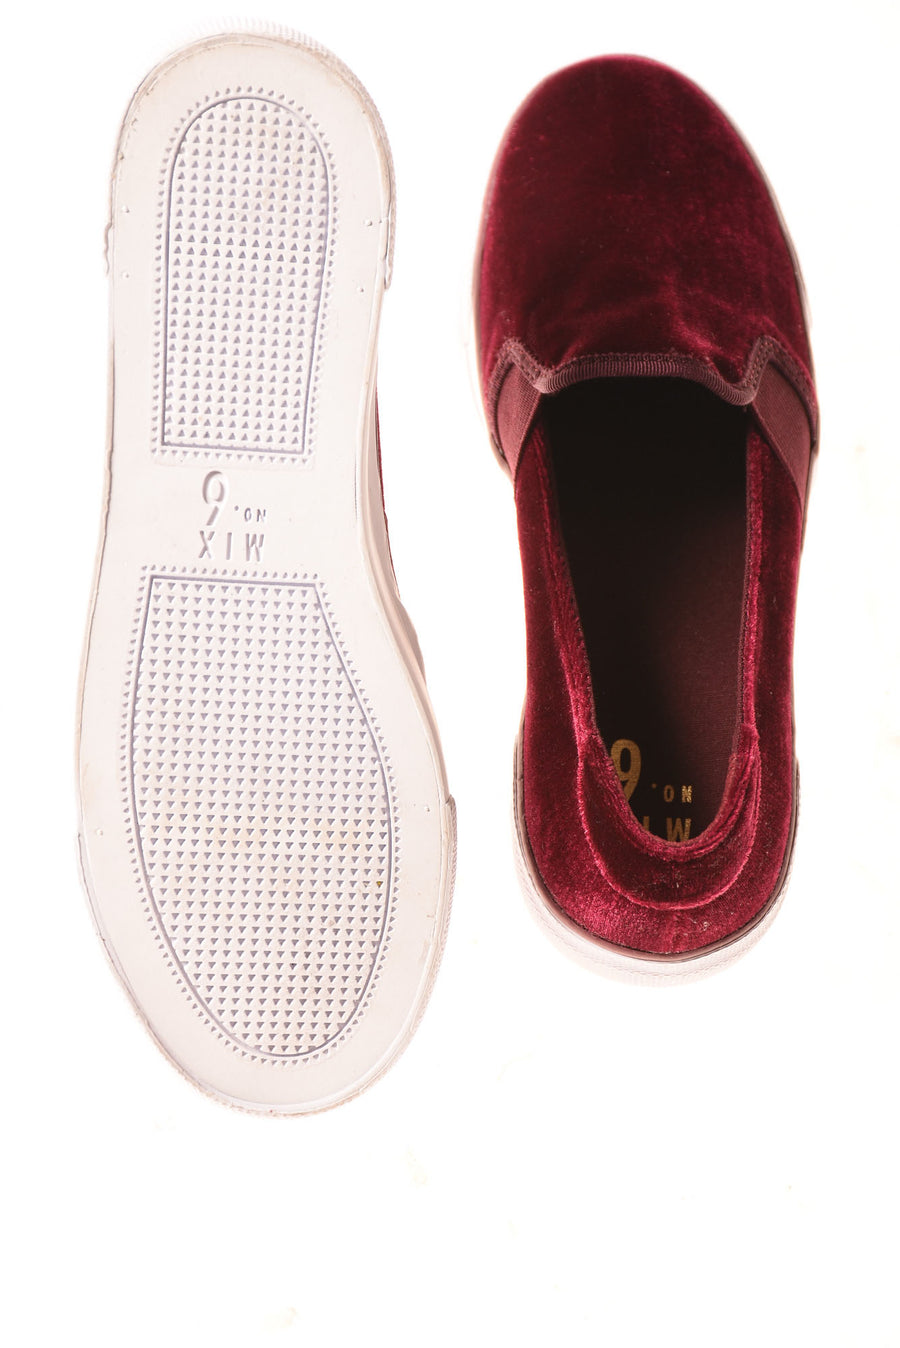 USED Mix Number 6 Women's Shoes 7 Maroon